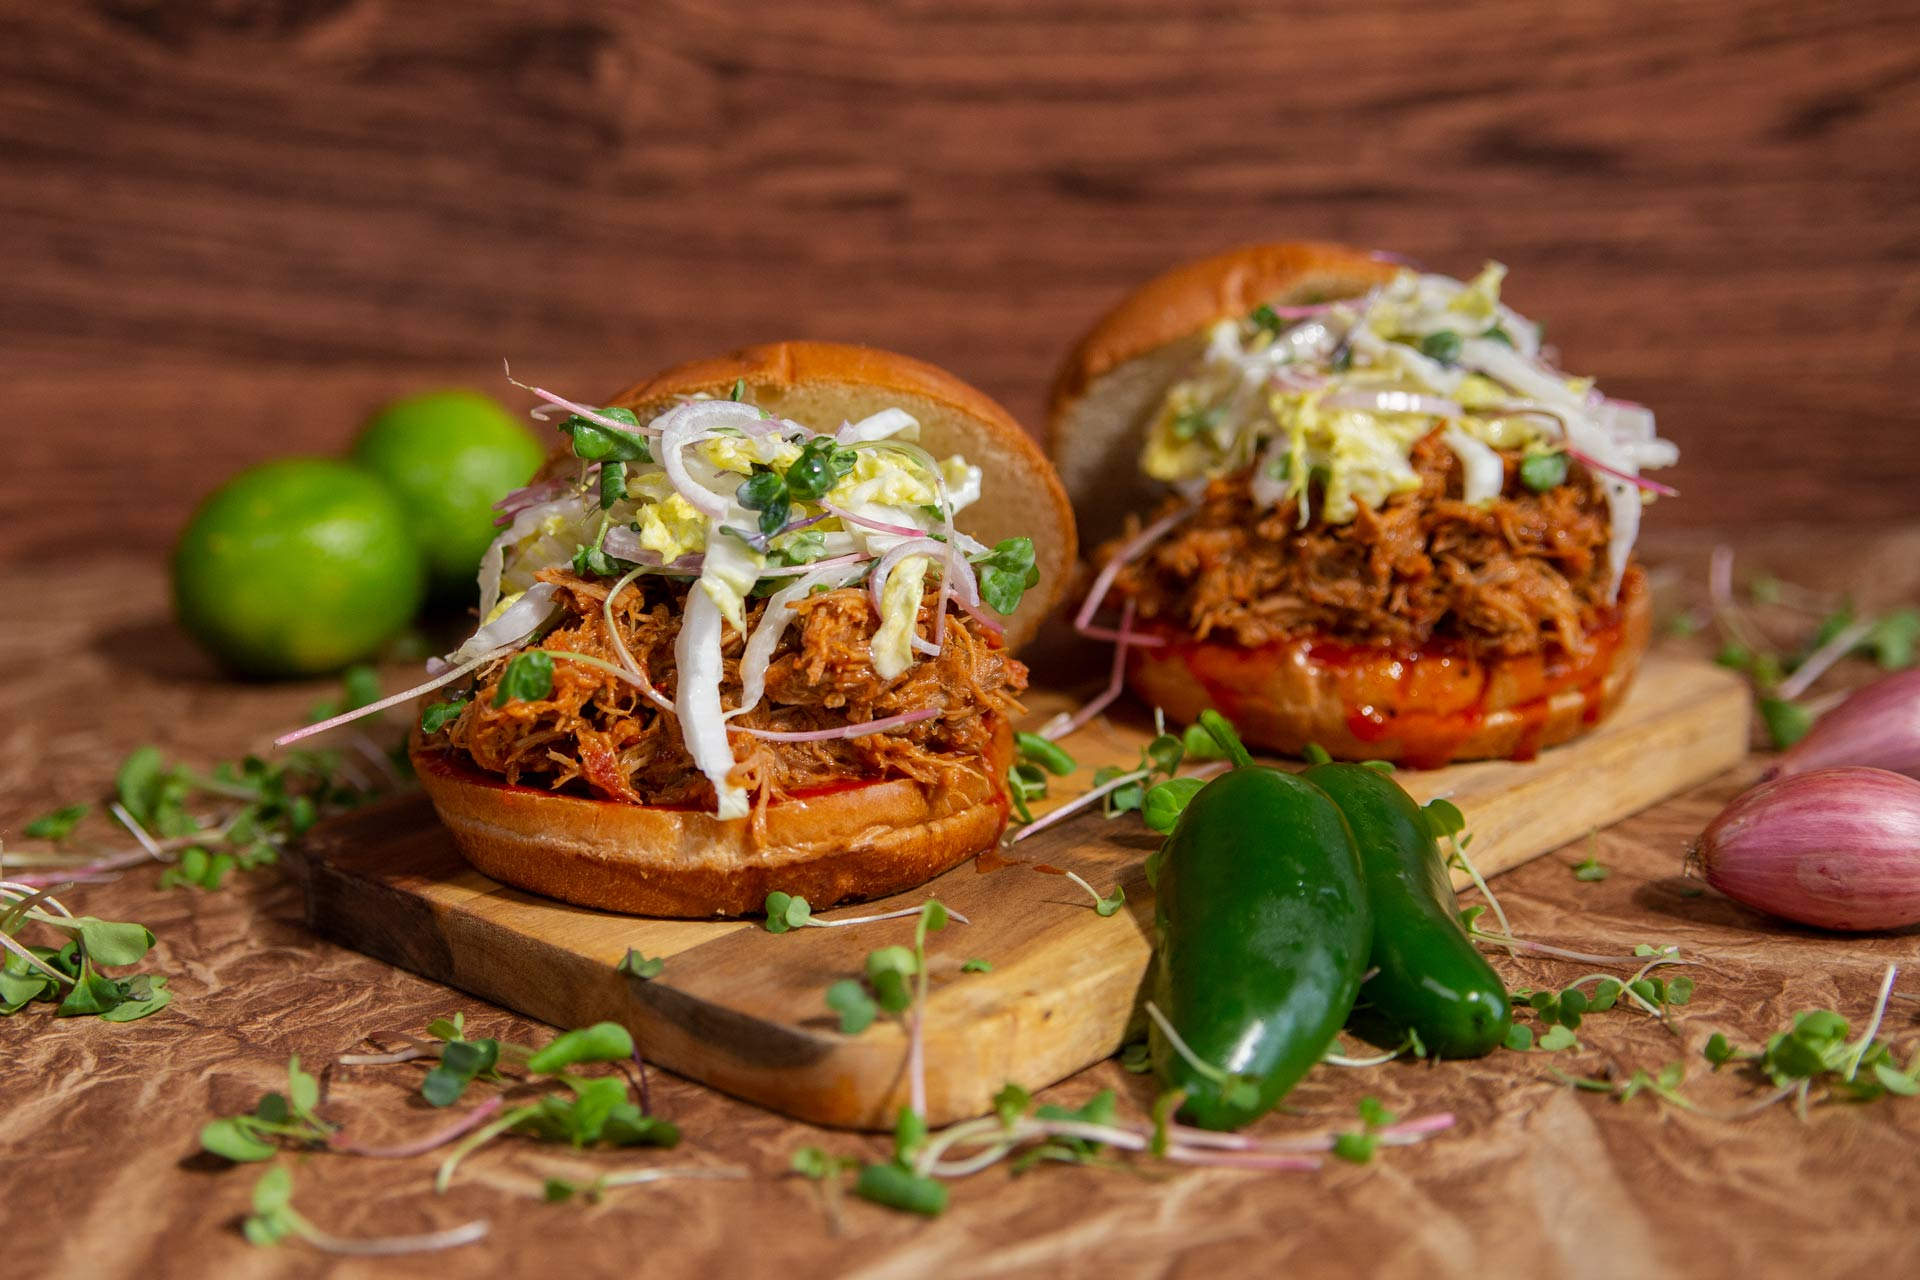 Italian Pulled Pork Sandwich